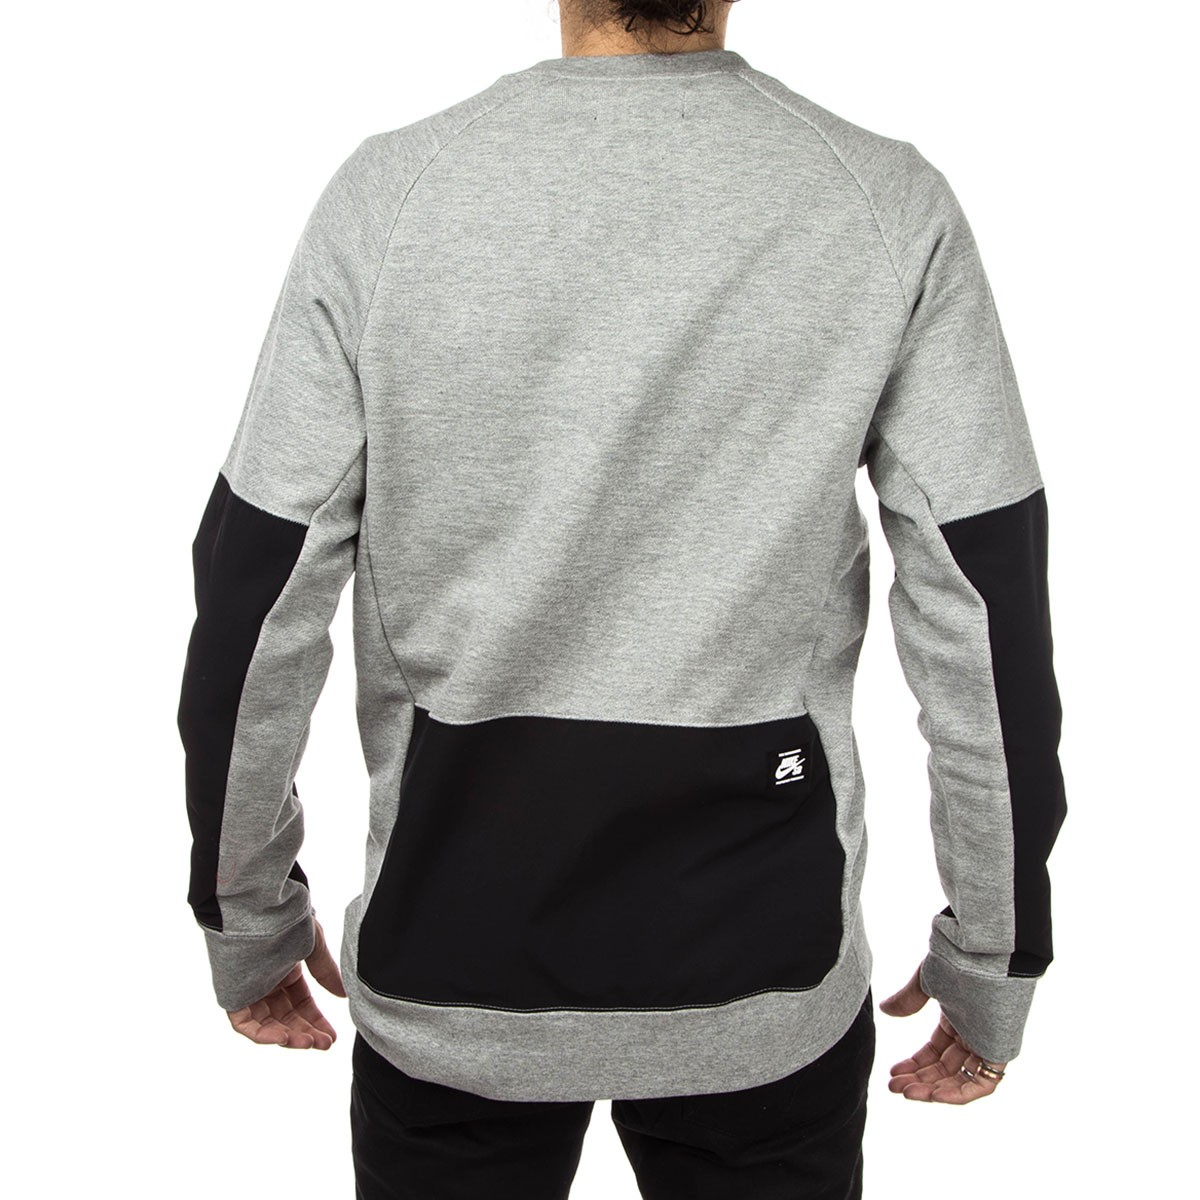 Nike Sb Everett Overlay Pocket Crew Sweatshirt Dark Heather Grey Black